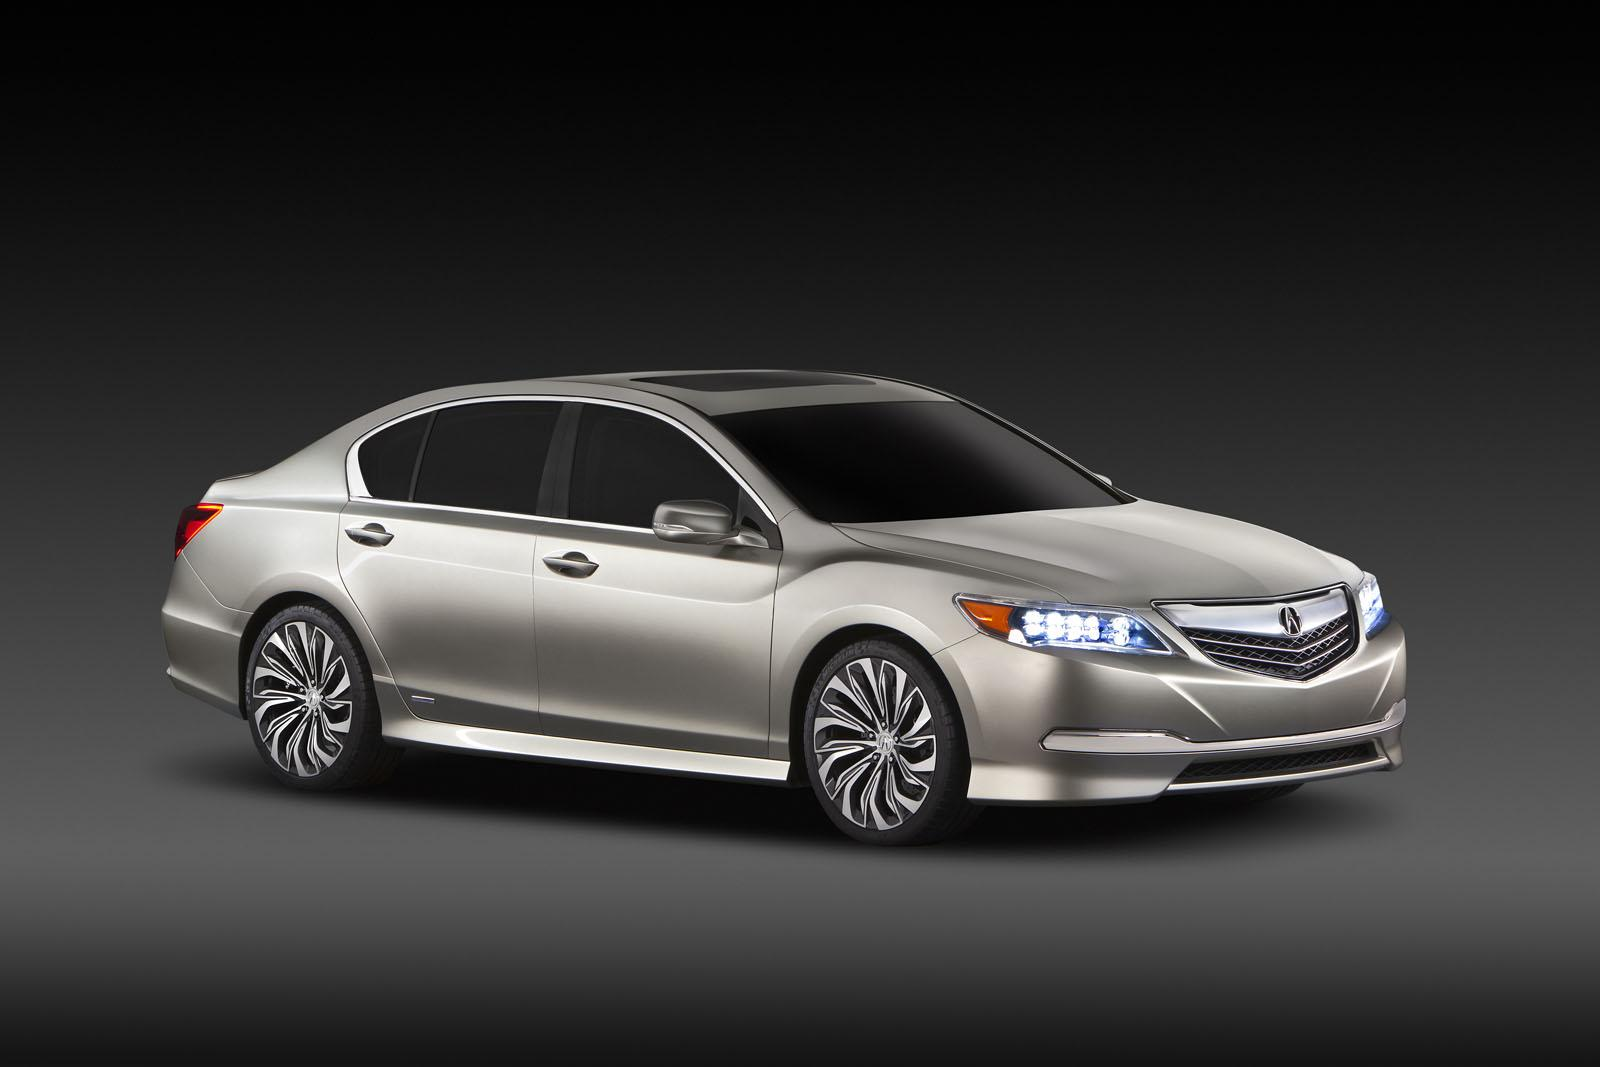 2014 acura rlx previews next honda legend. Black Bedroom Furniture Sets. Home Design Ideas